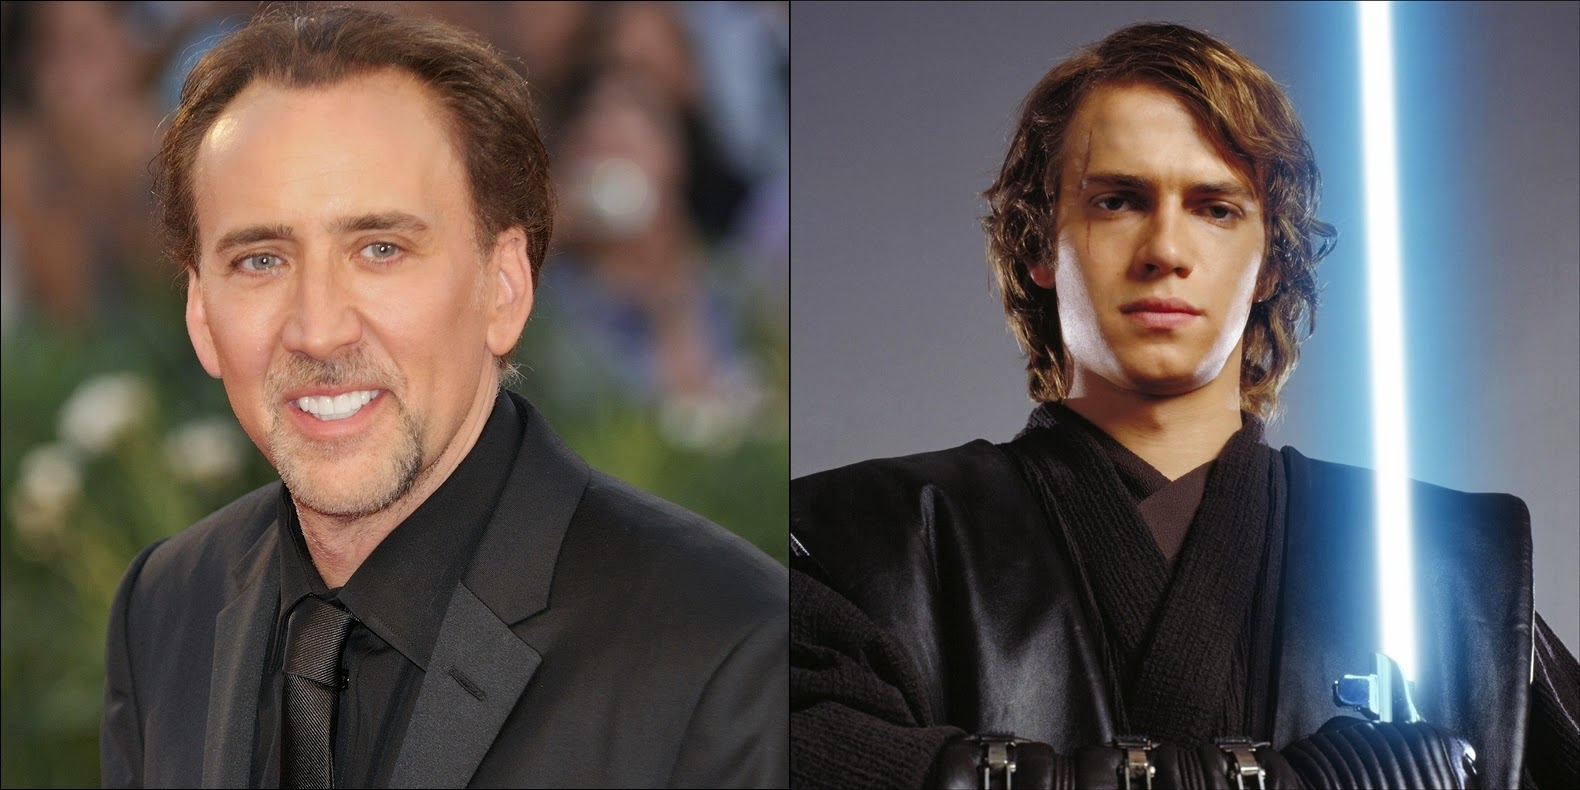 The Star Wars Underworld Nicolas Cage Praises Hayden Christensen S Portrayal Of Anakin Skywalker